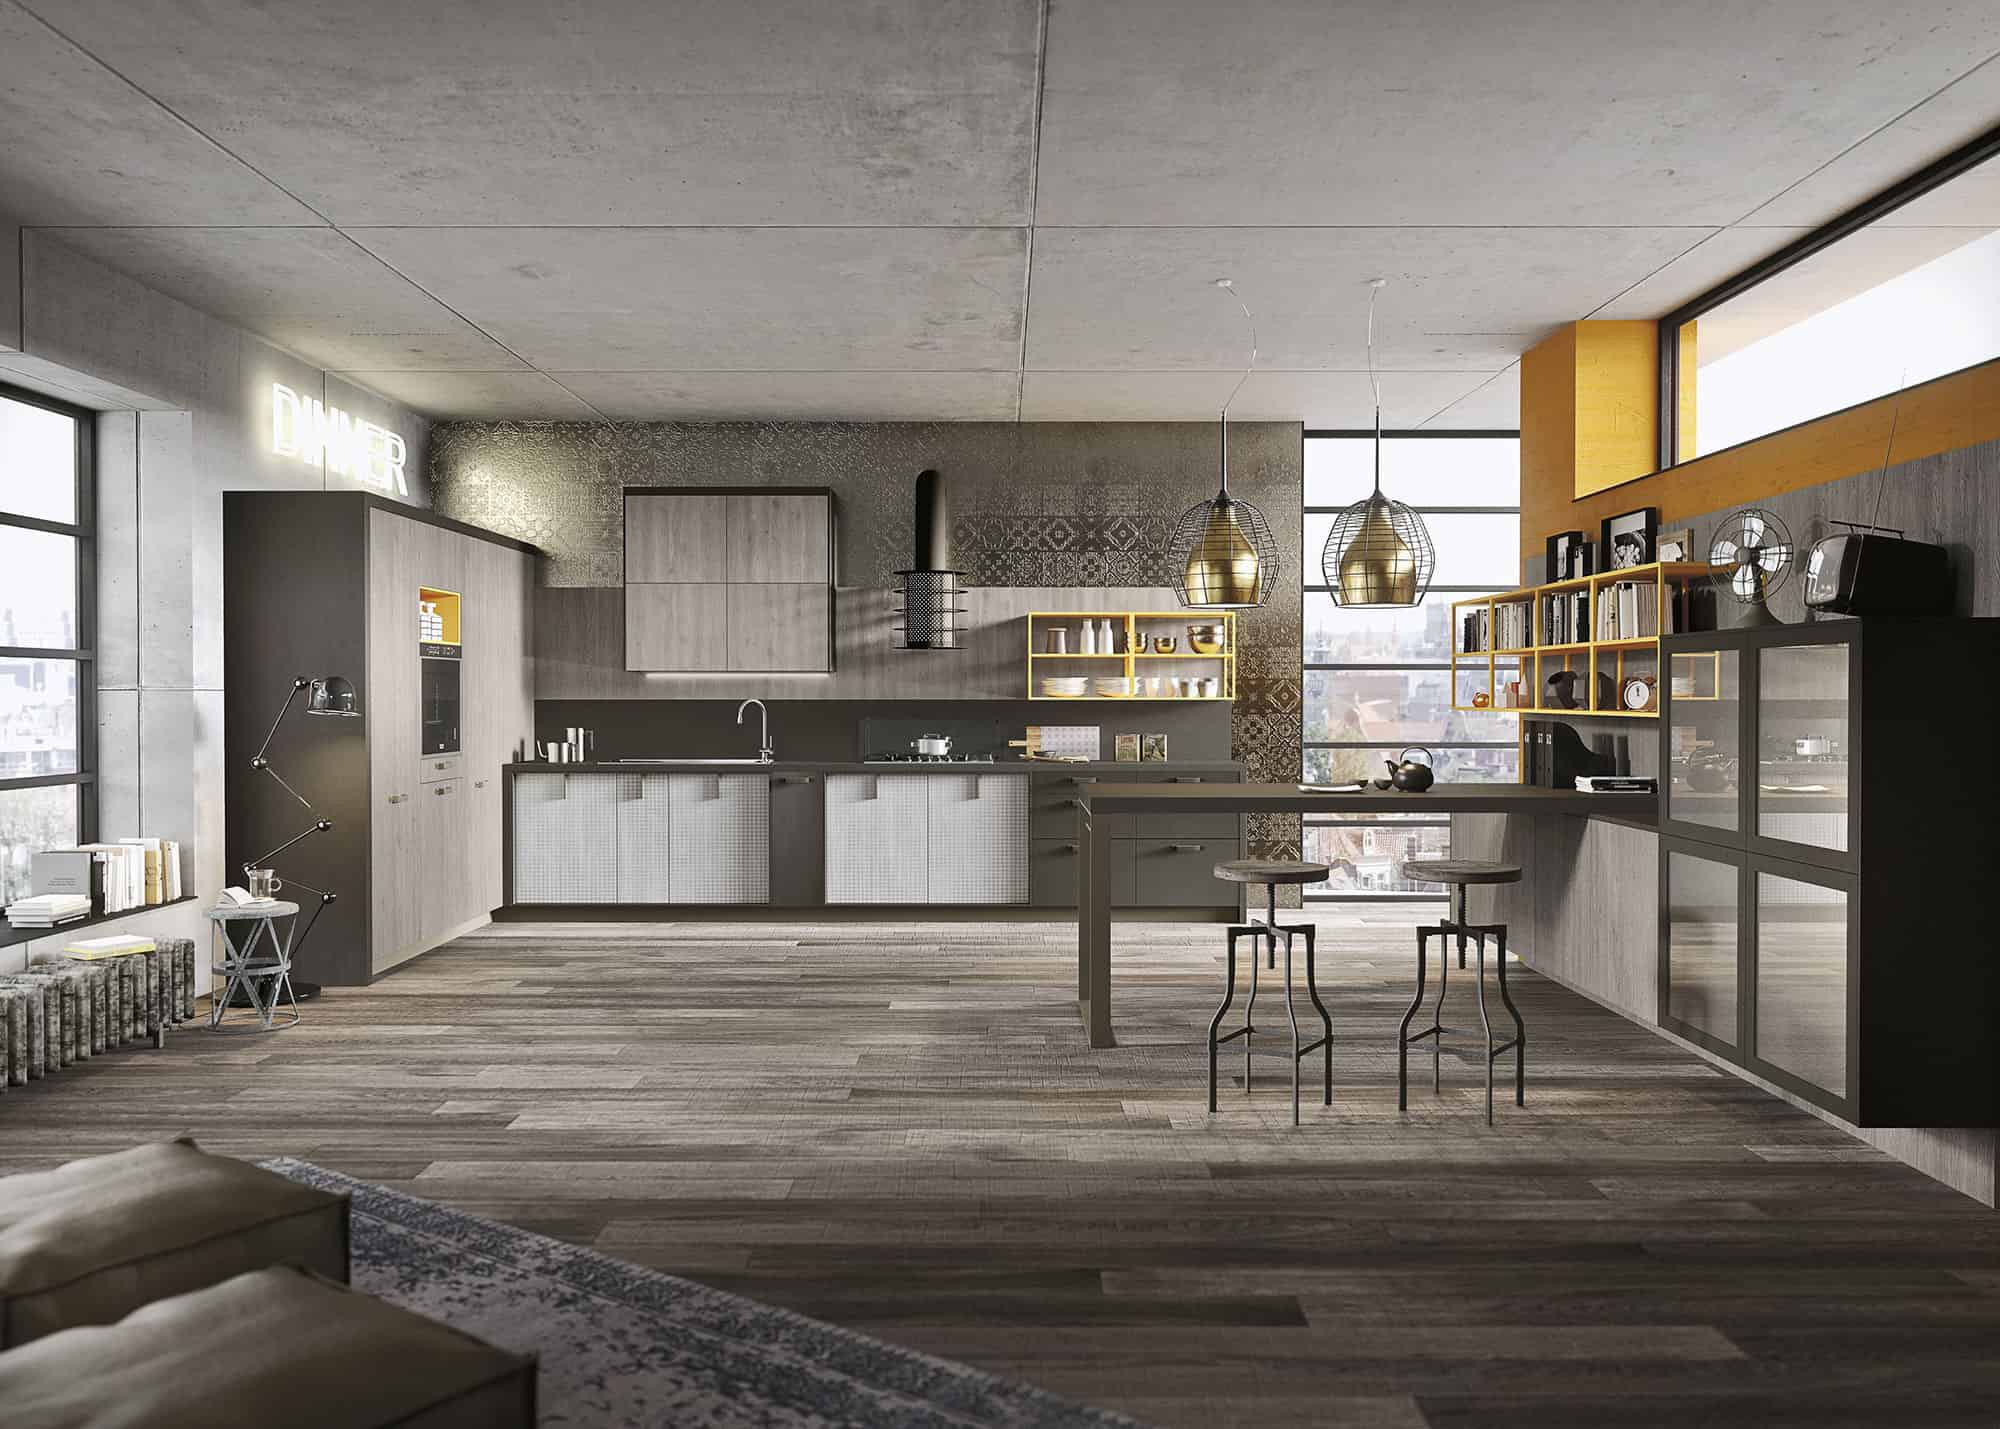 Merveilleux This Urban Loft Kitchen Design (above) Uses The Same Elements As The One  With The Modern Look But It Features The Weathered Looking U201cFossil Oaku201d  Melamine ...